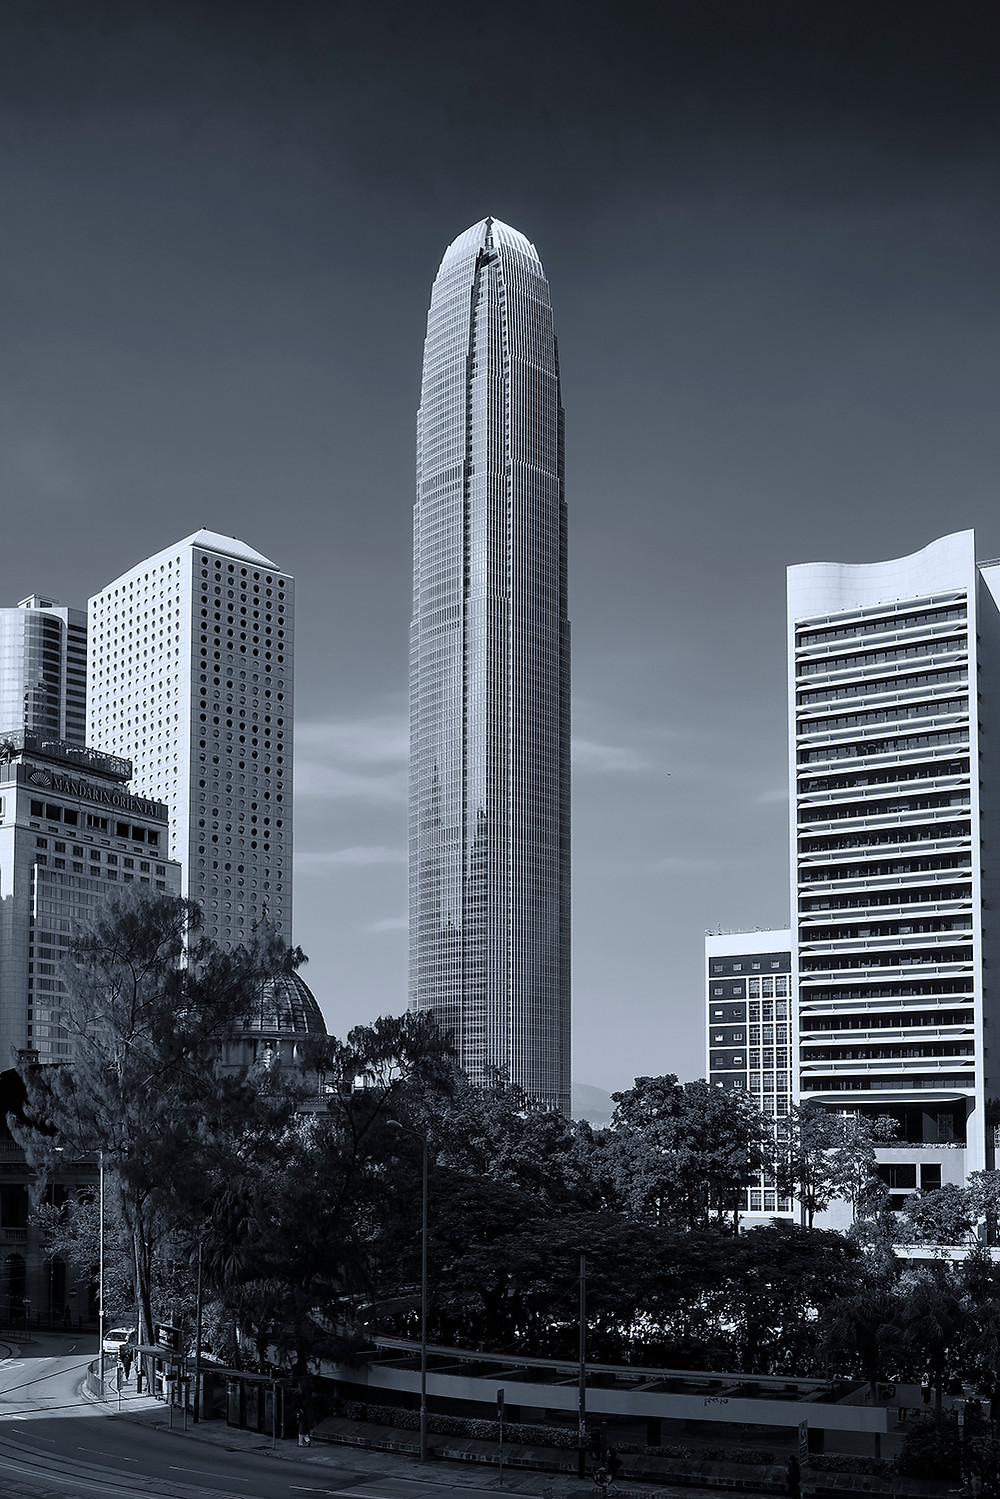 A black and white photograph of the IFC Building Two (IFC2) in Hong Kong Circa 2019